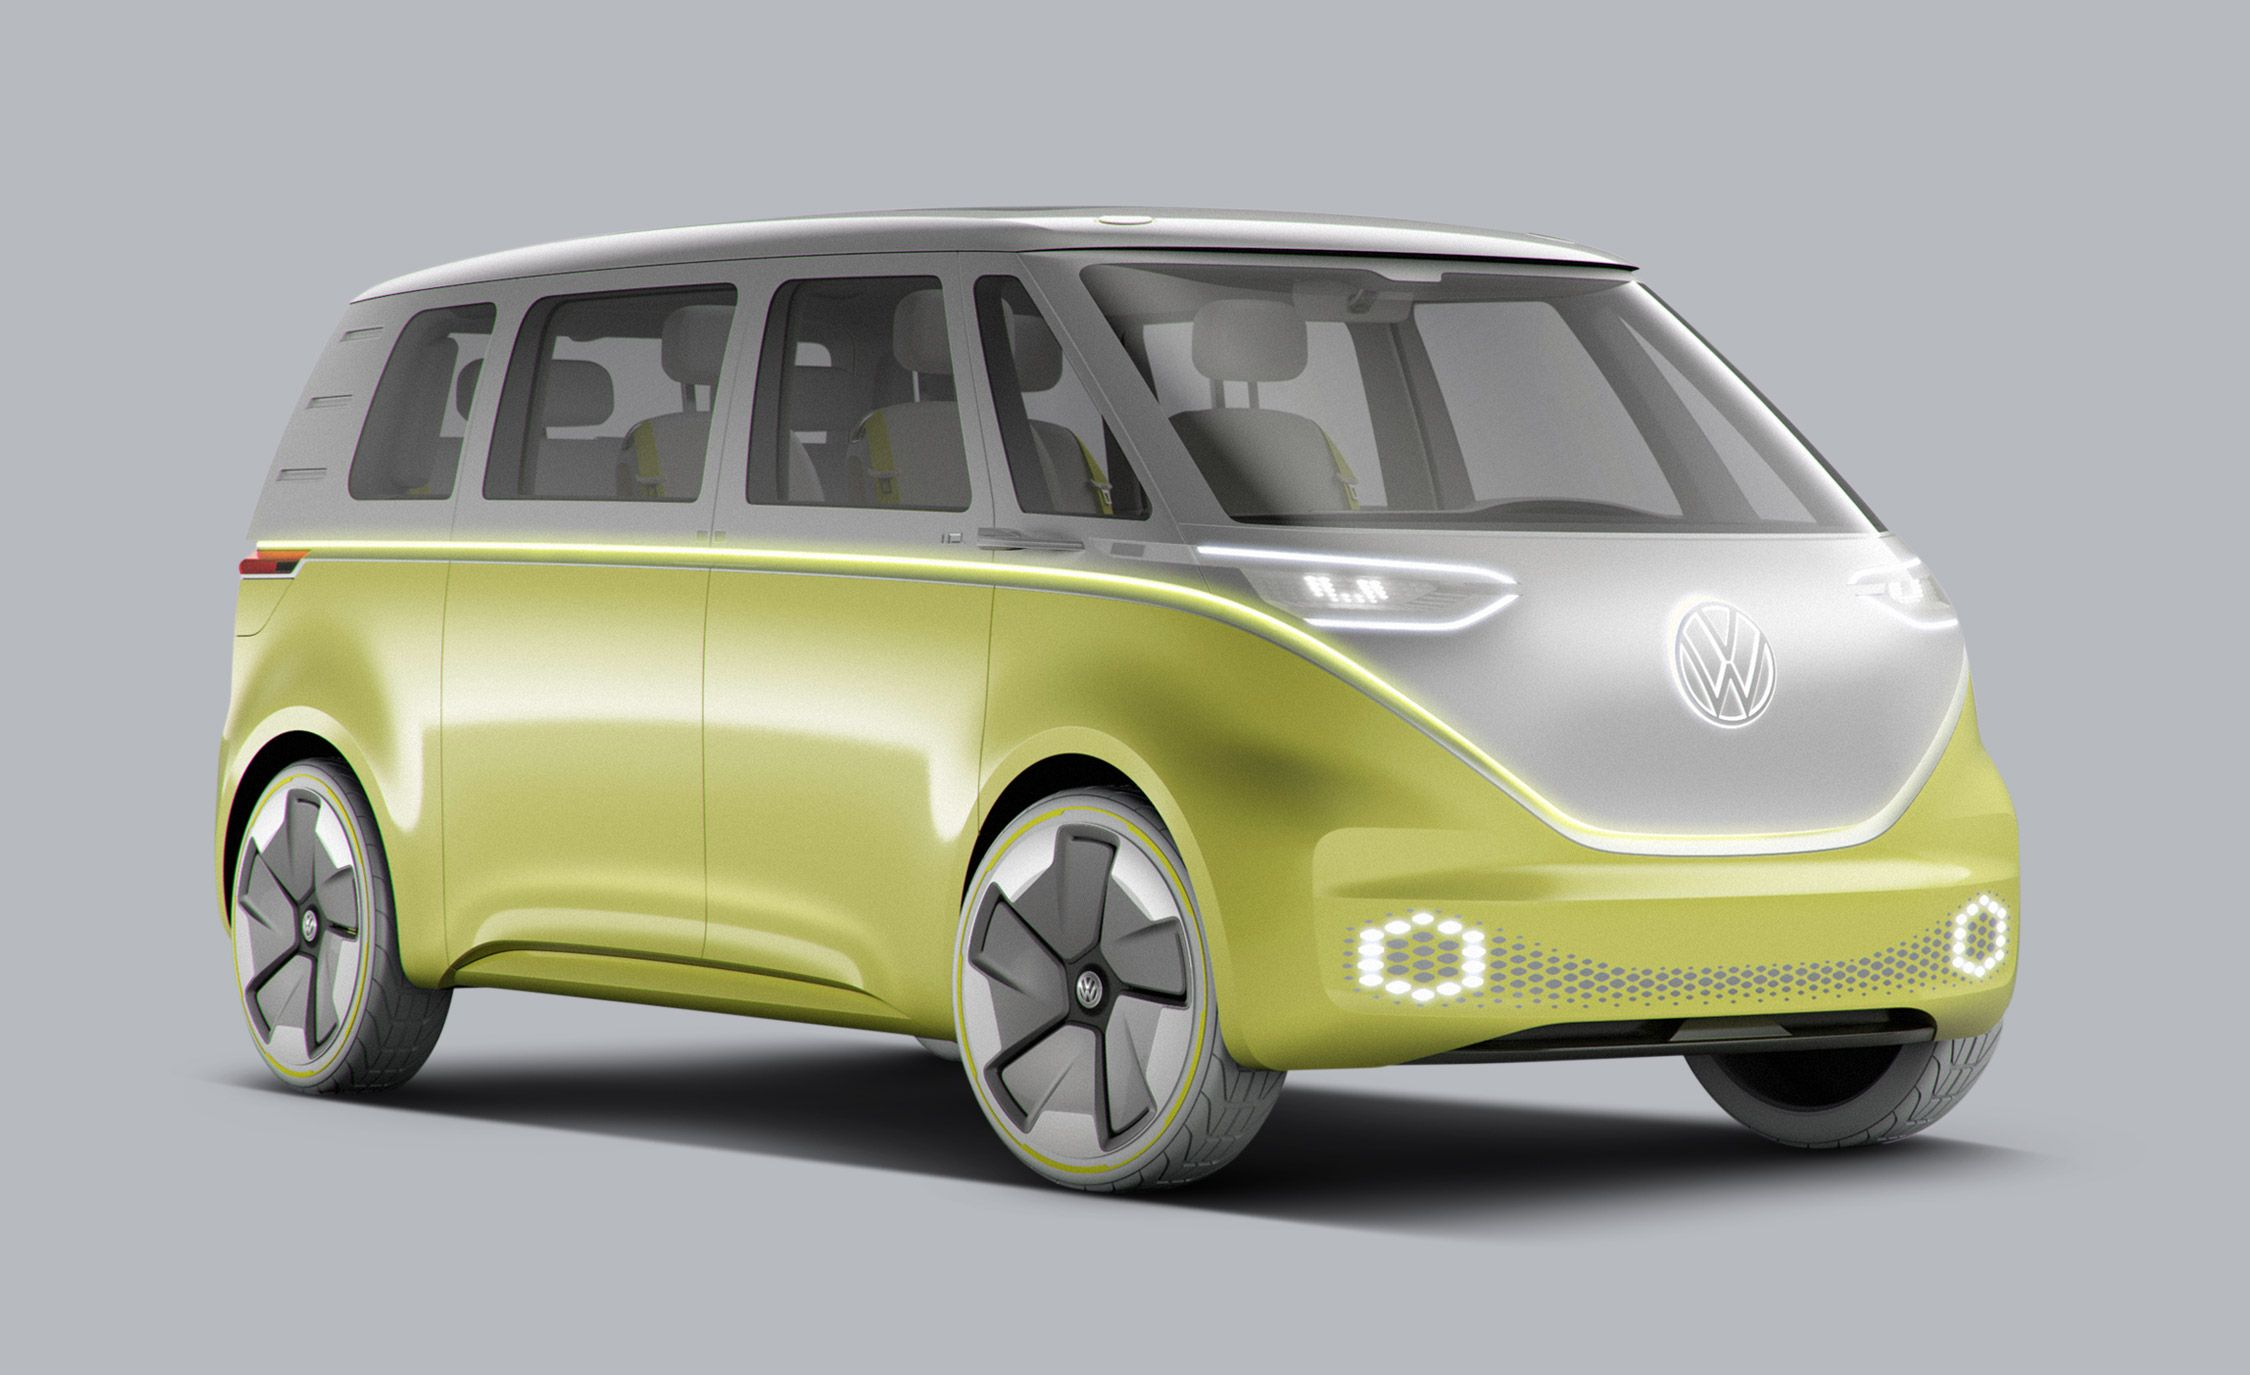 2022 Volkswagen Microbus The Electric Resurrection Of An Icon